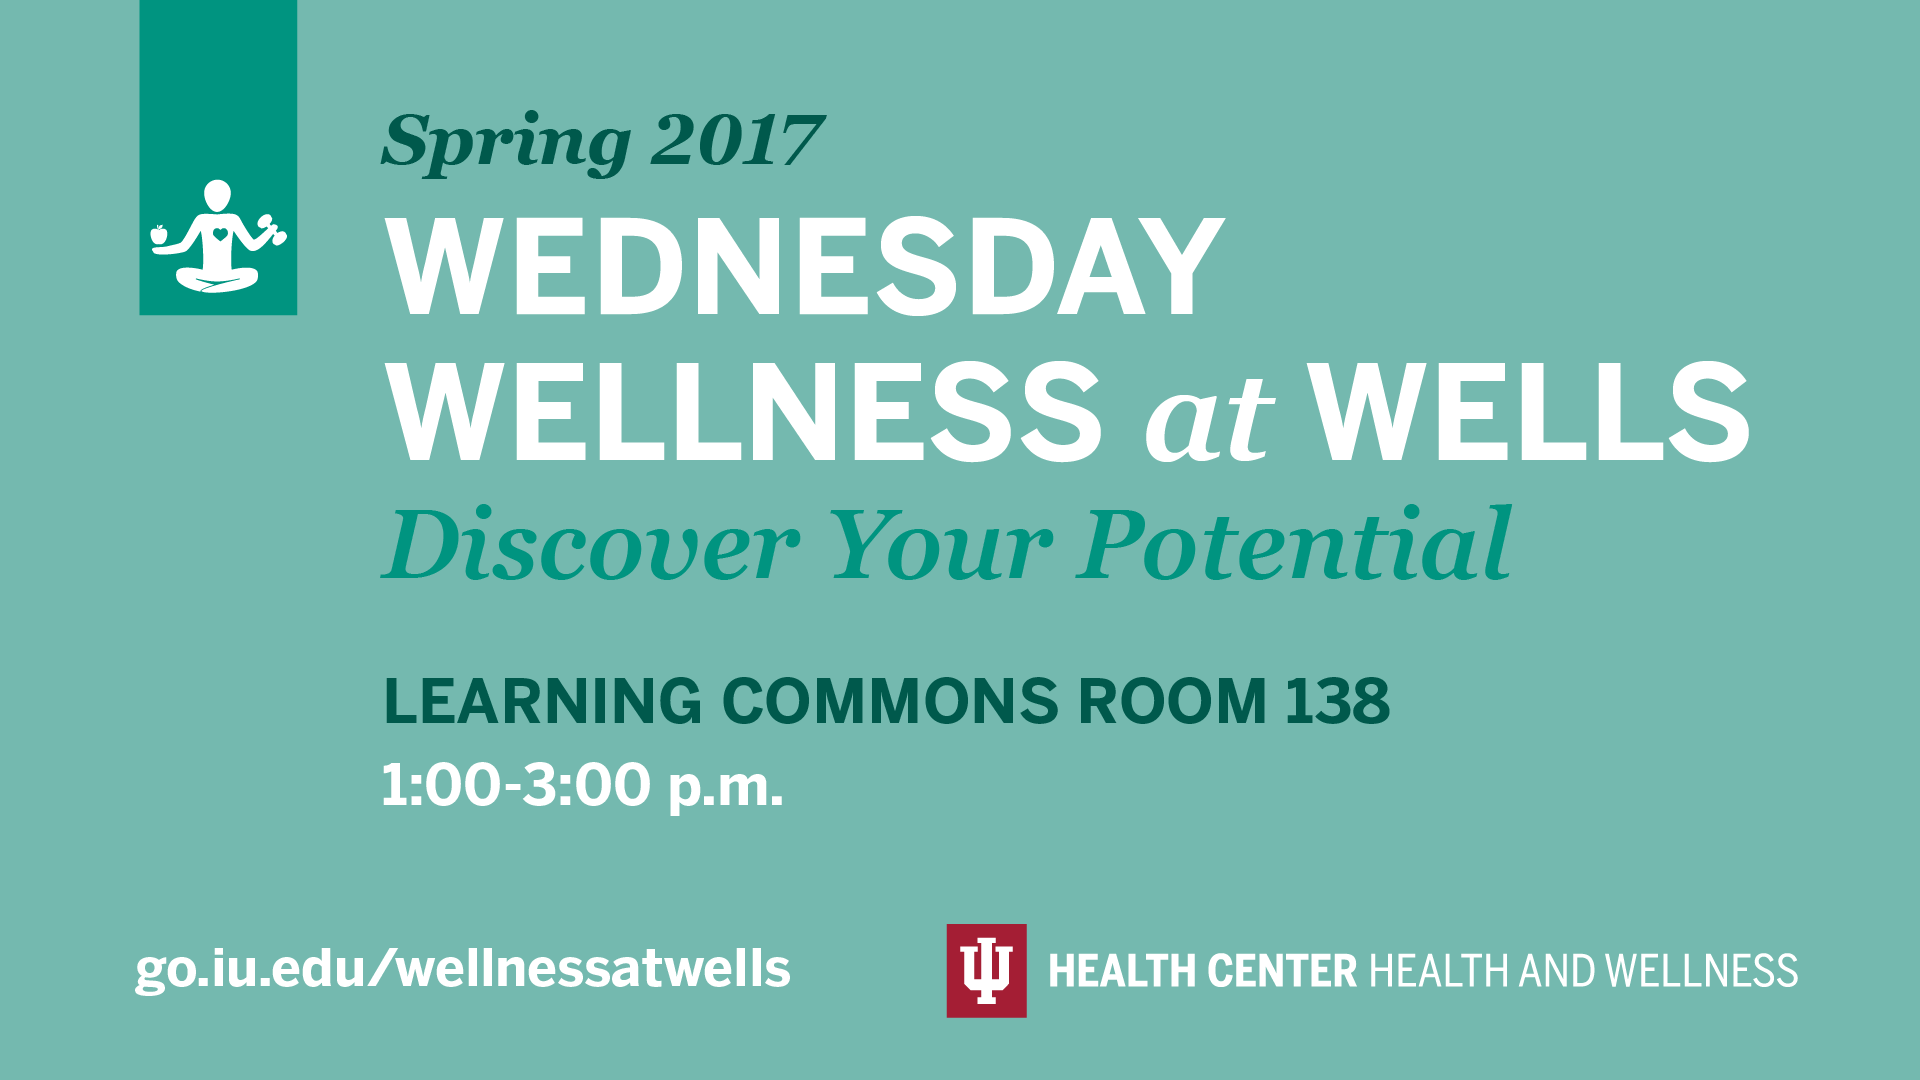 Wellness at Wells for the Spring 2017 semester is on Wednesdays from 1-3pm